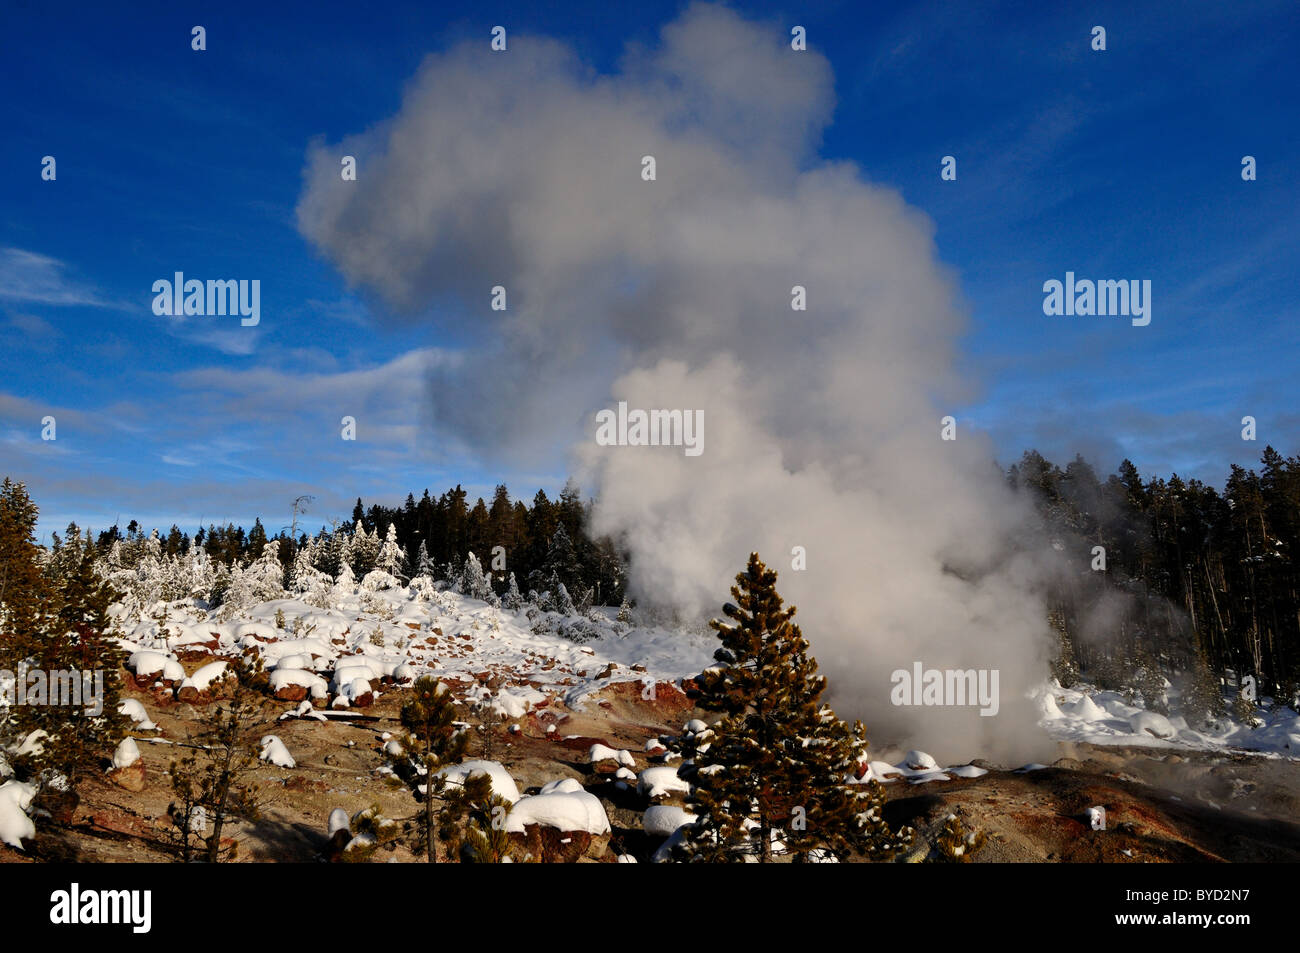 Steam rising from the Steamboat Geyser. Yellowstone National Park, Wyoming, USA. - Stock Image